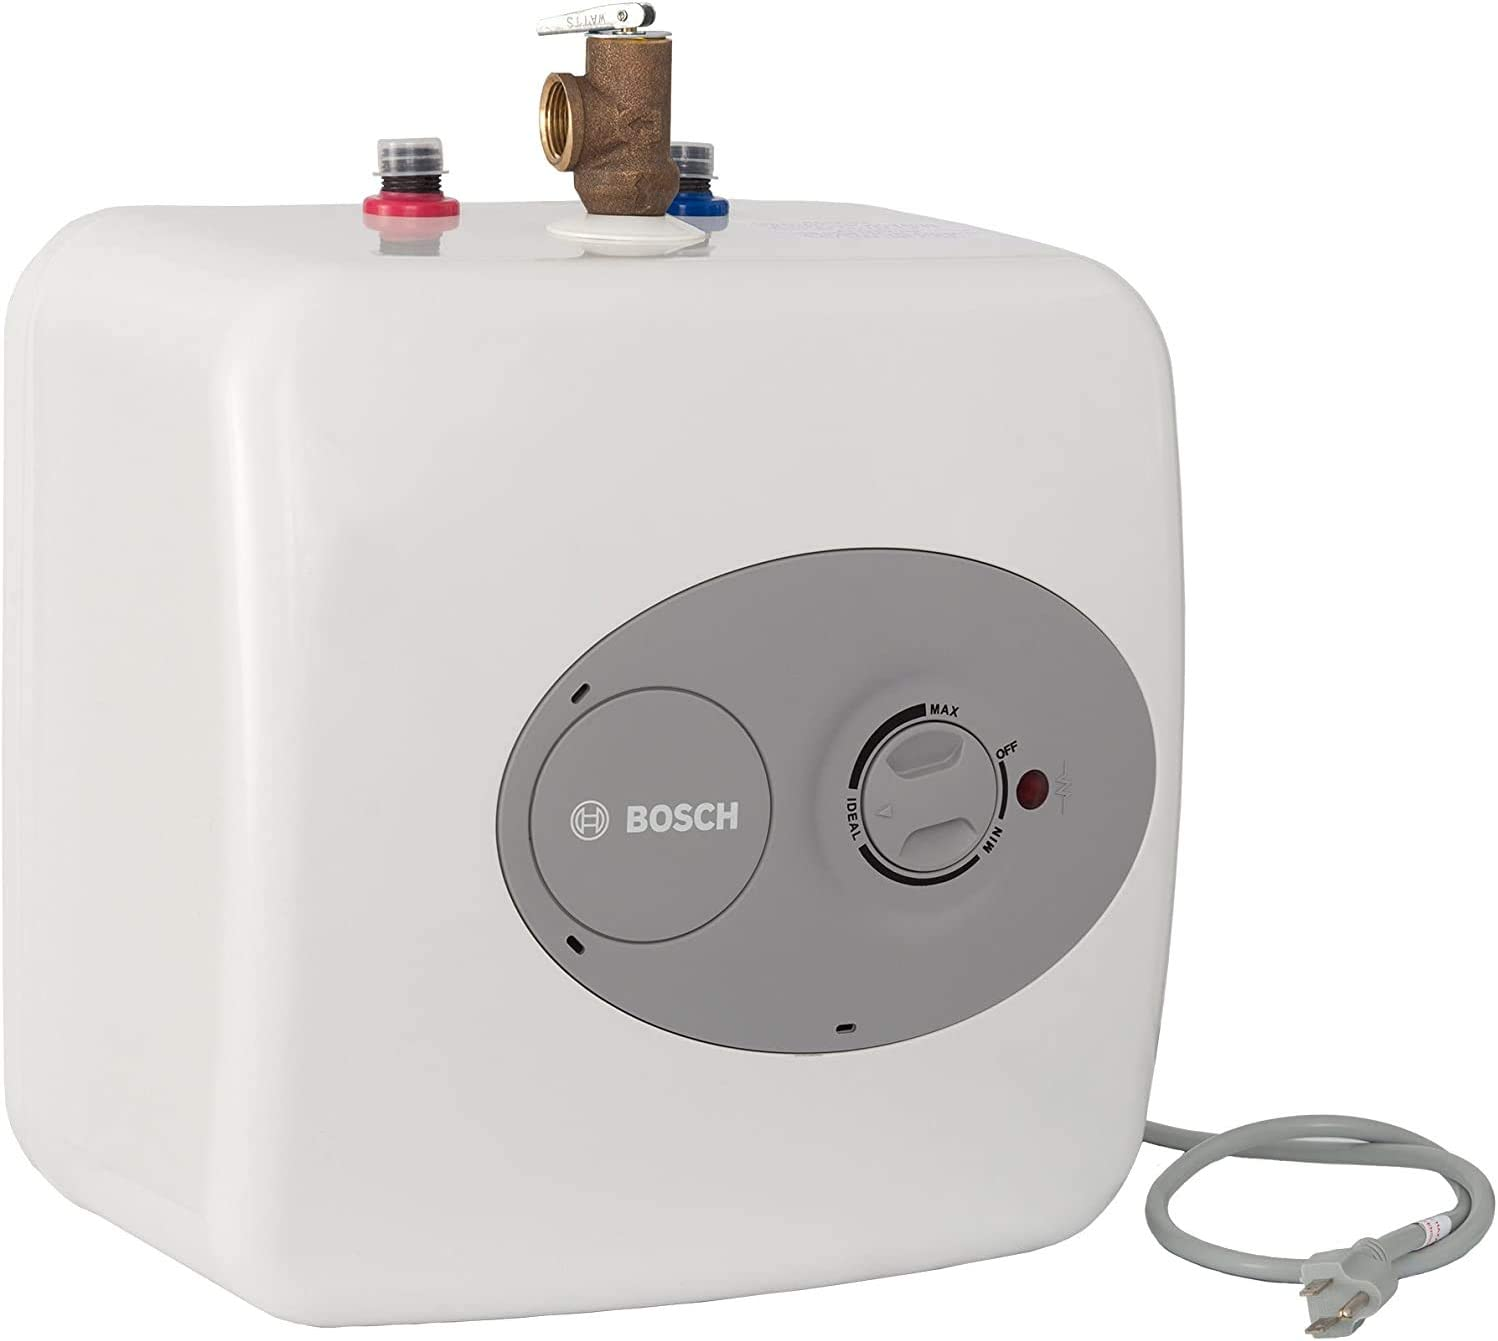 instant hot water shower (mini tank heater)